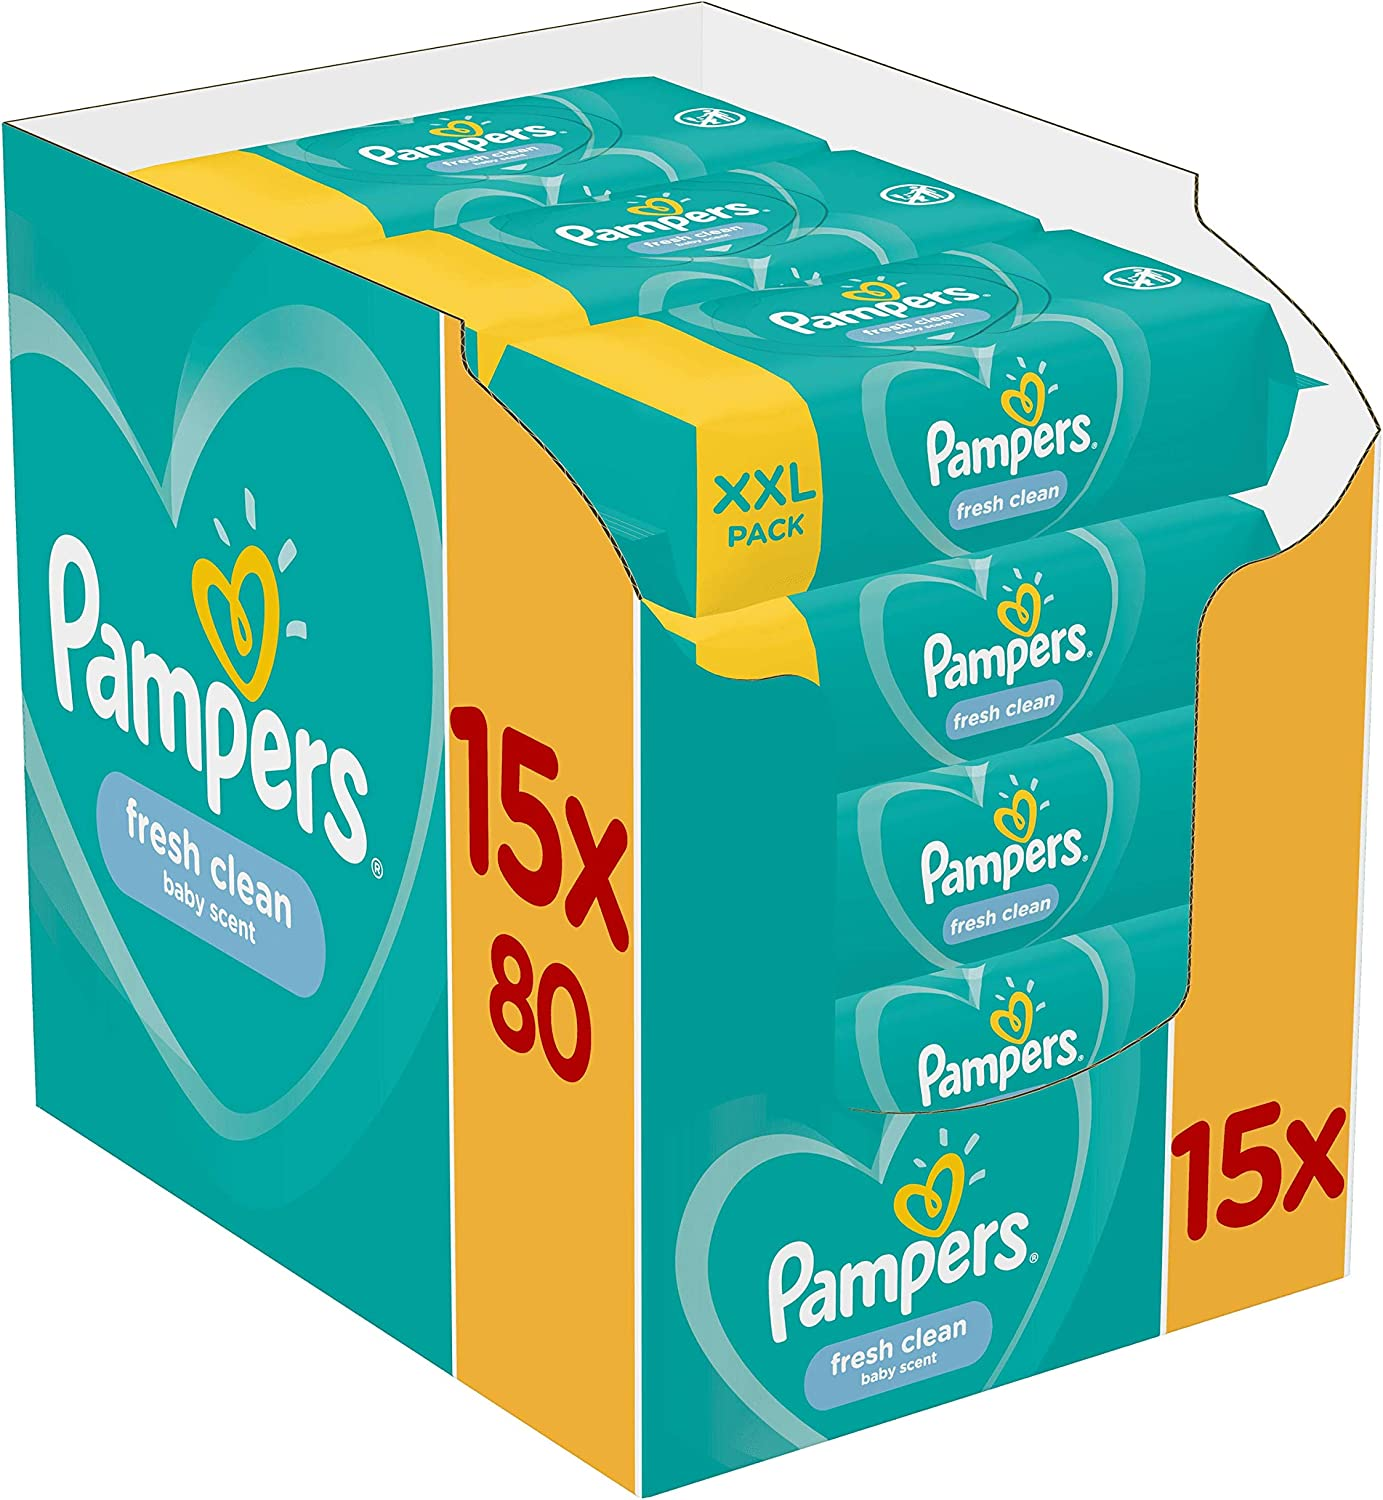 Pampers Fresh Clean Baby Wipes 15×80 = 1200 Wipes 32% OFF £15 @ Amazon